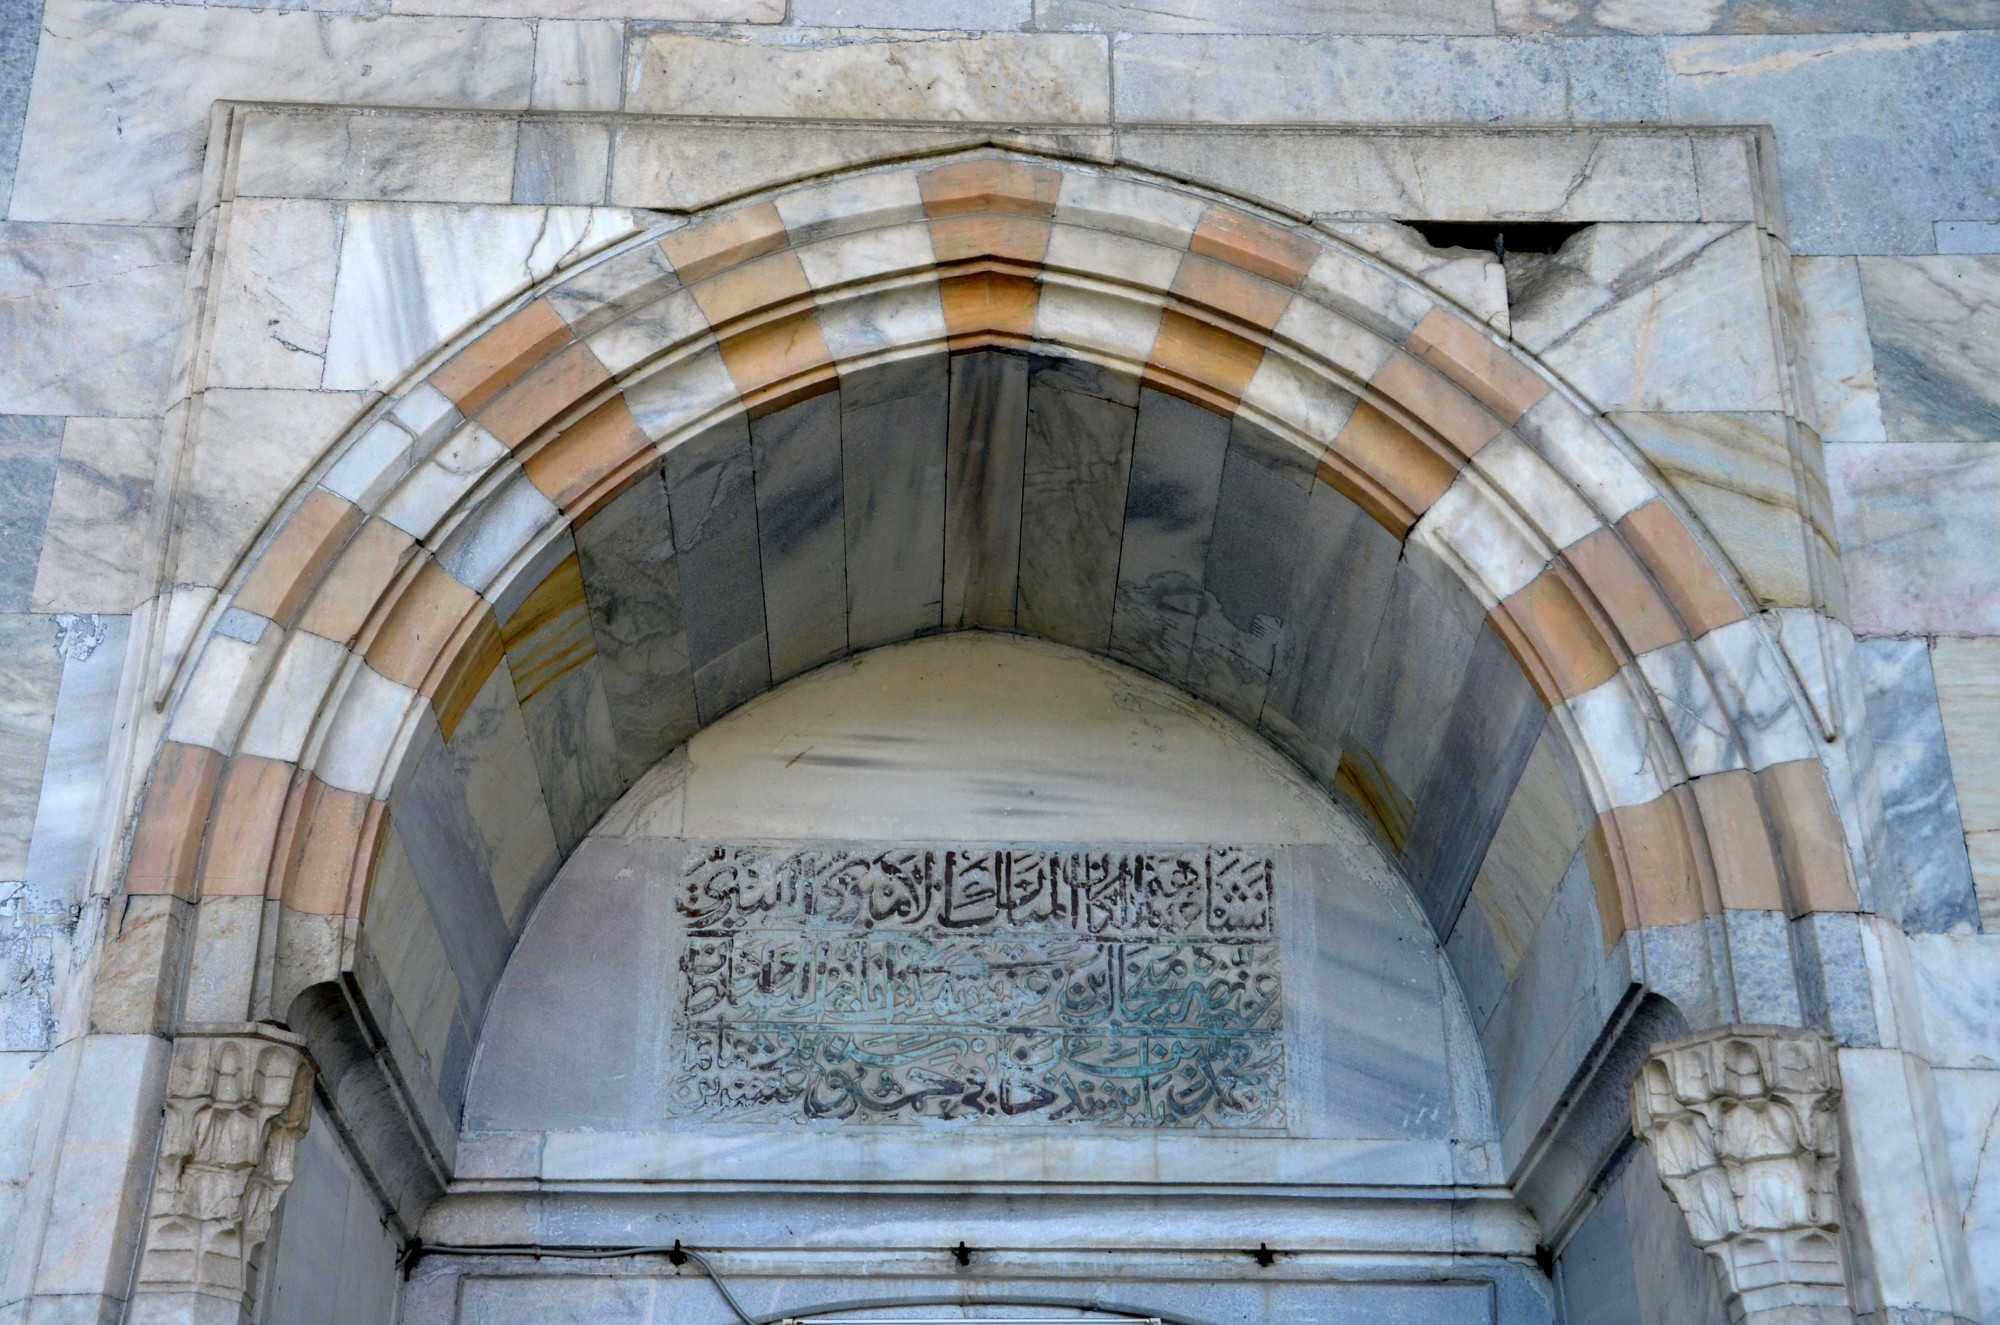 The inscription over Gazi Mihal Mosque doors in Edirne